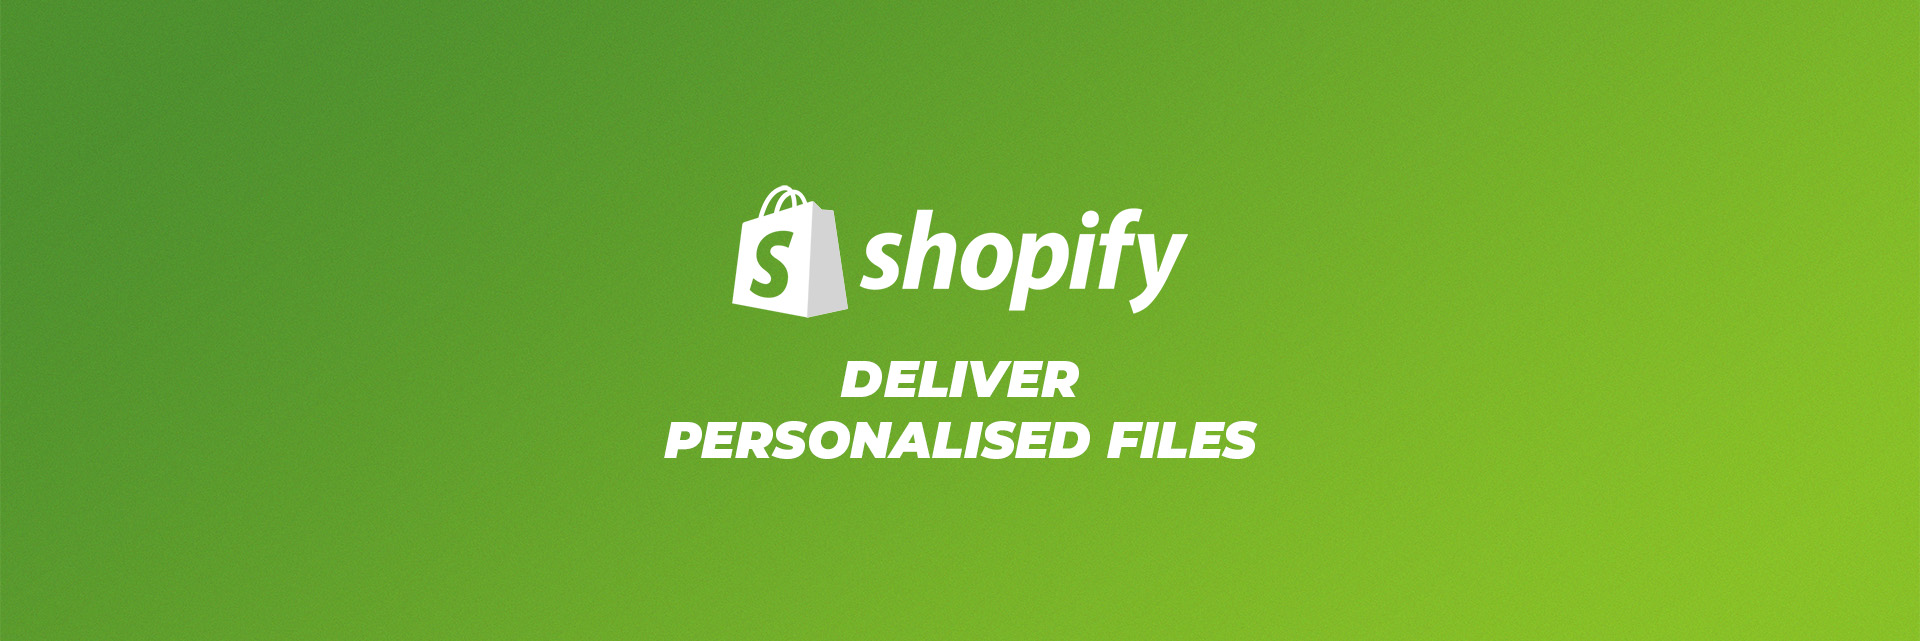 deliver personalised files